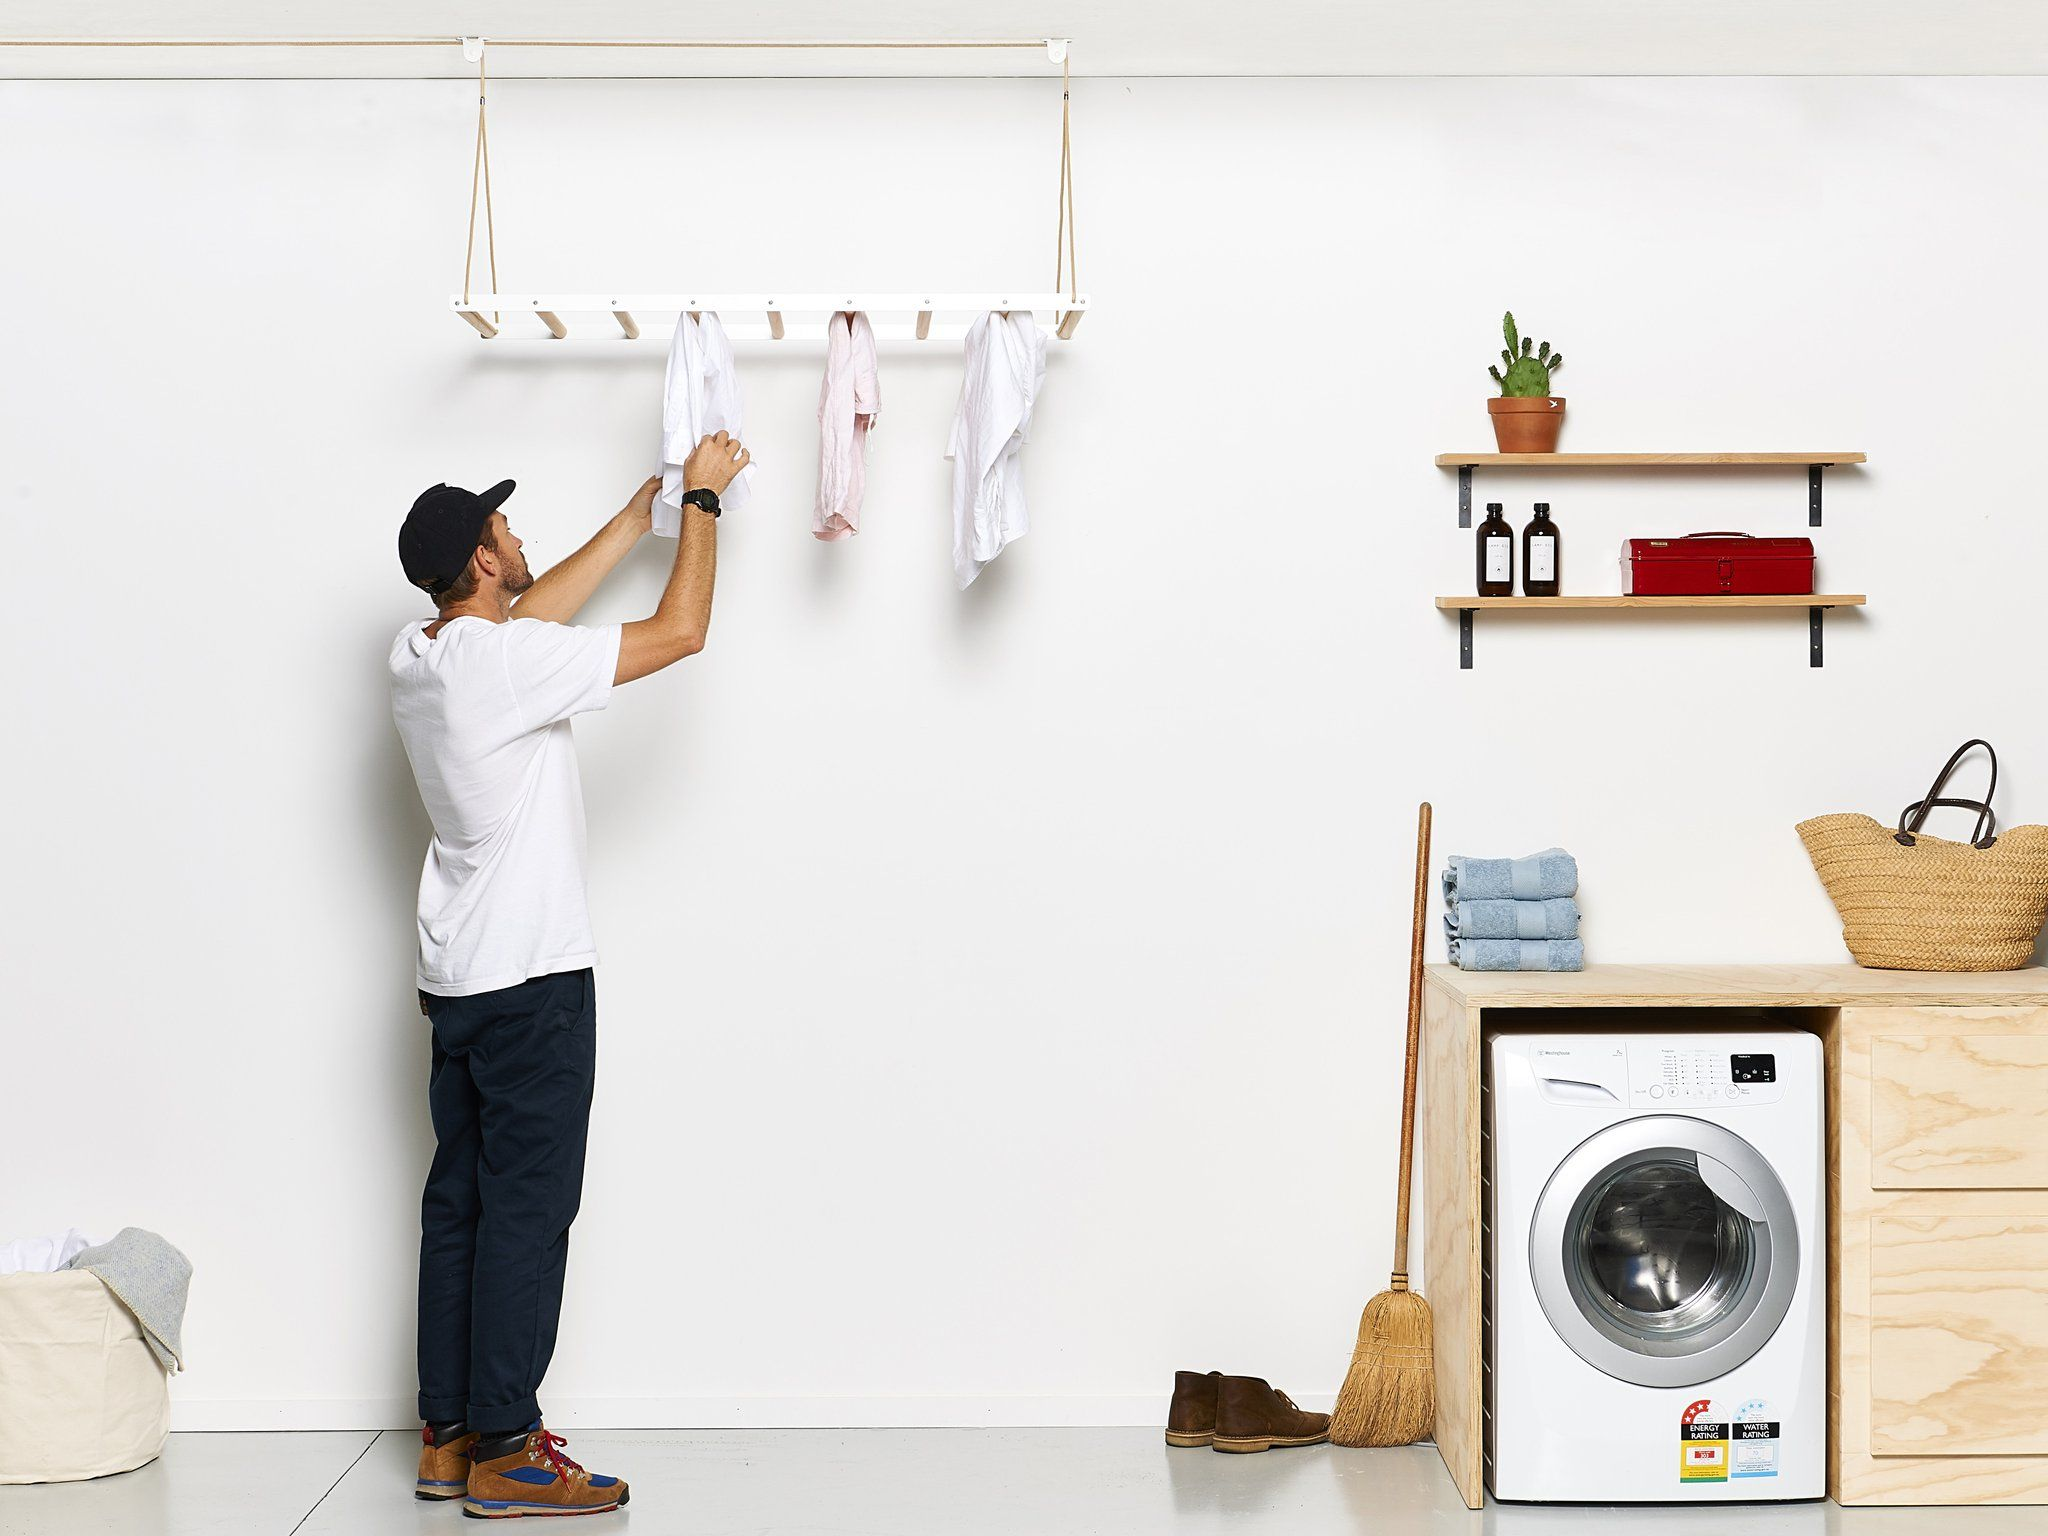 Hanging Drying Rack | Ceiling-Mounted Clothes Line | Wooden Laundry Rack – George and Willy